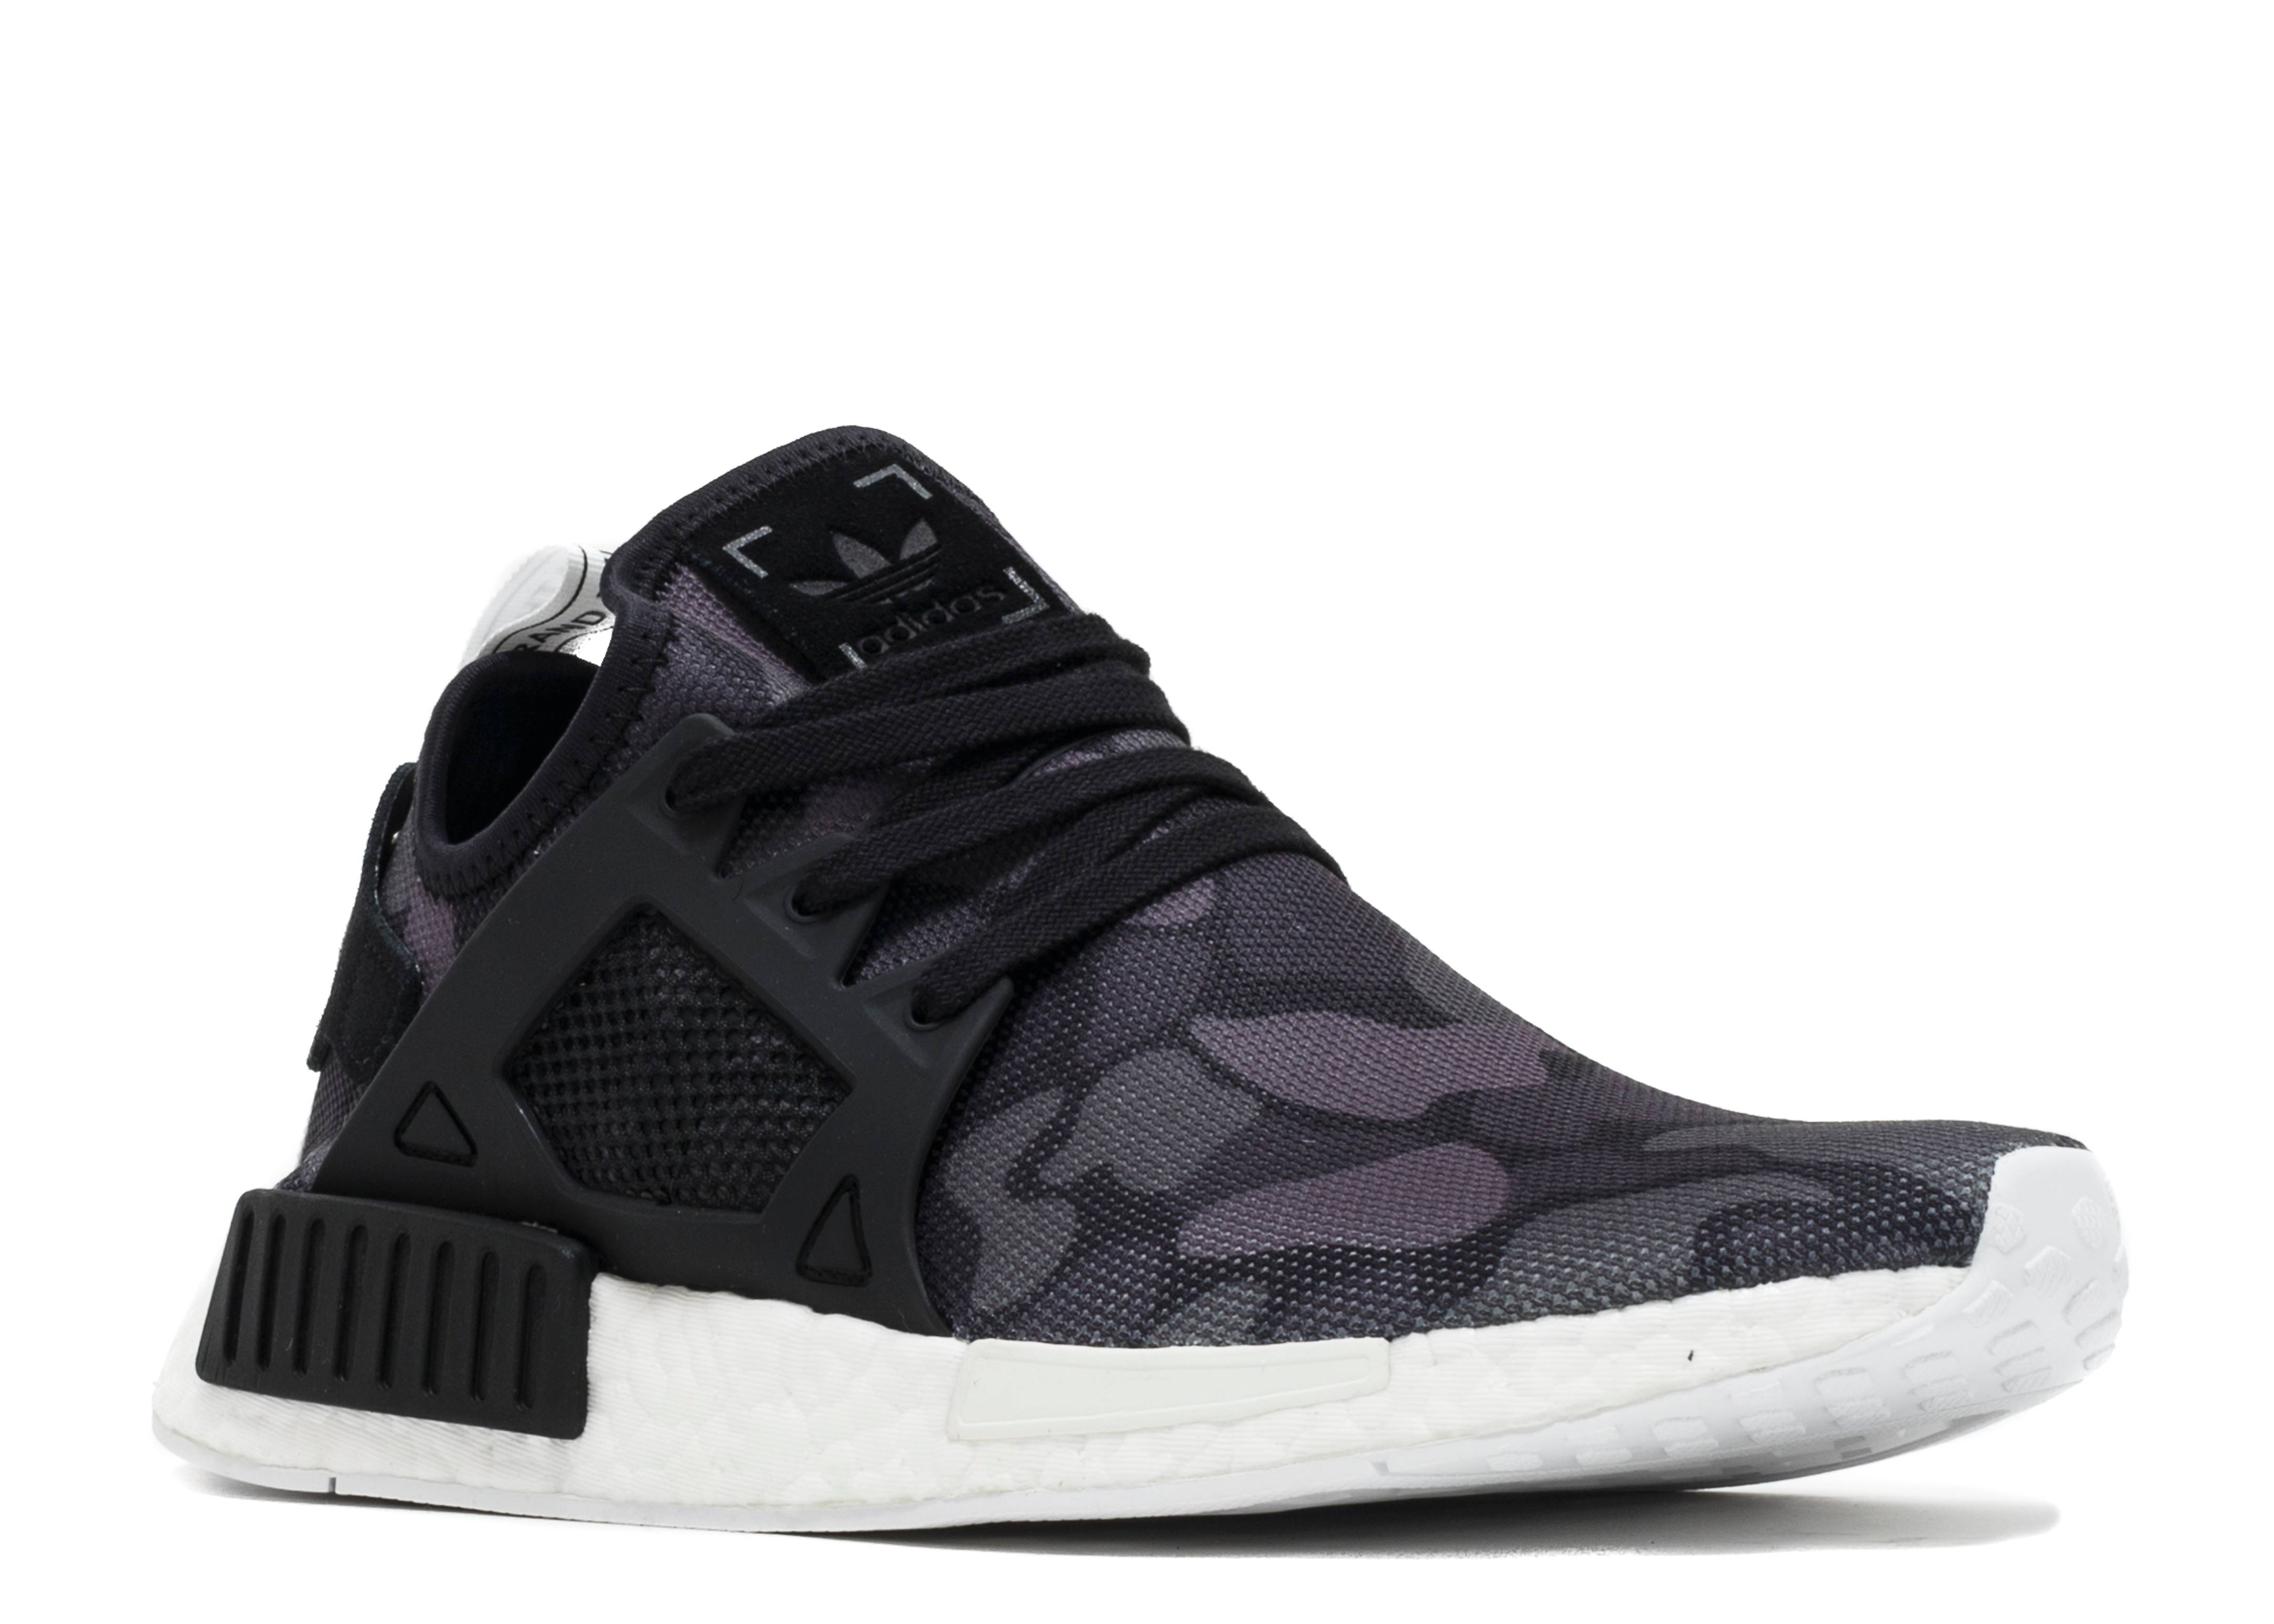 Cheap NMD R2 PK Color Running White Core Black and New Adldas